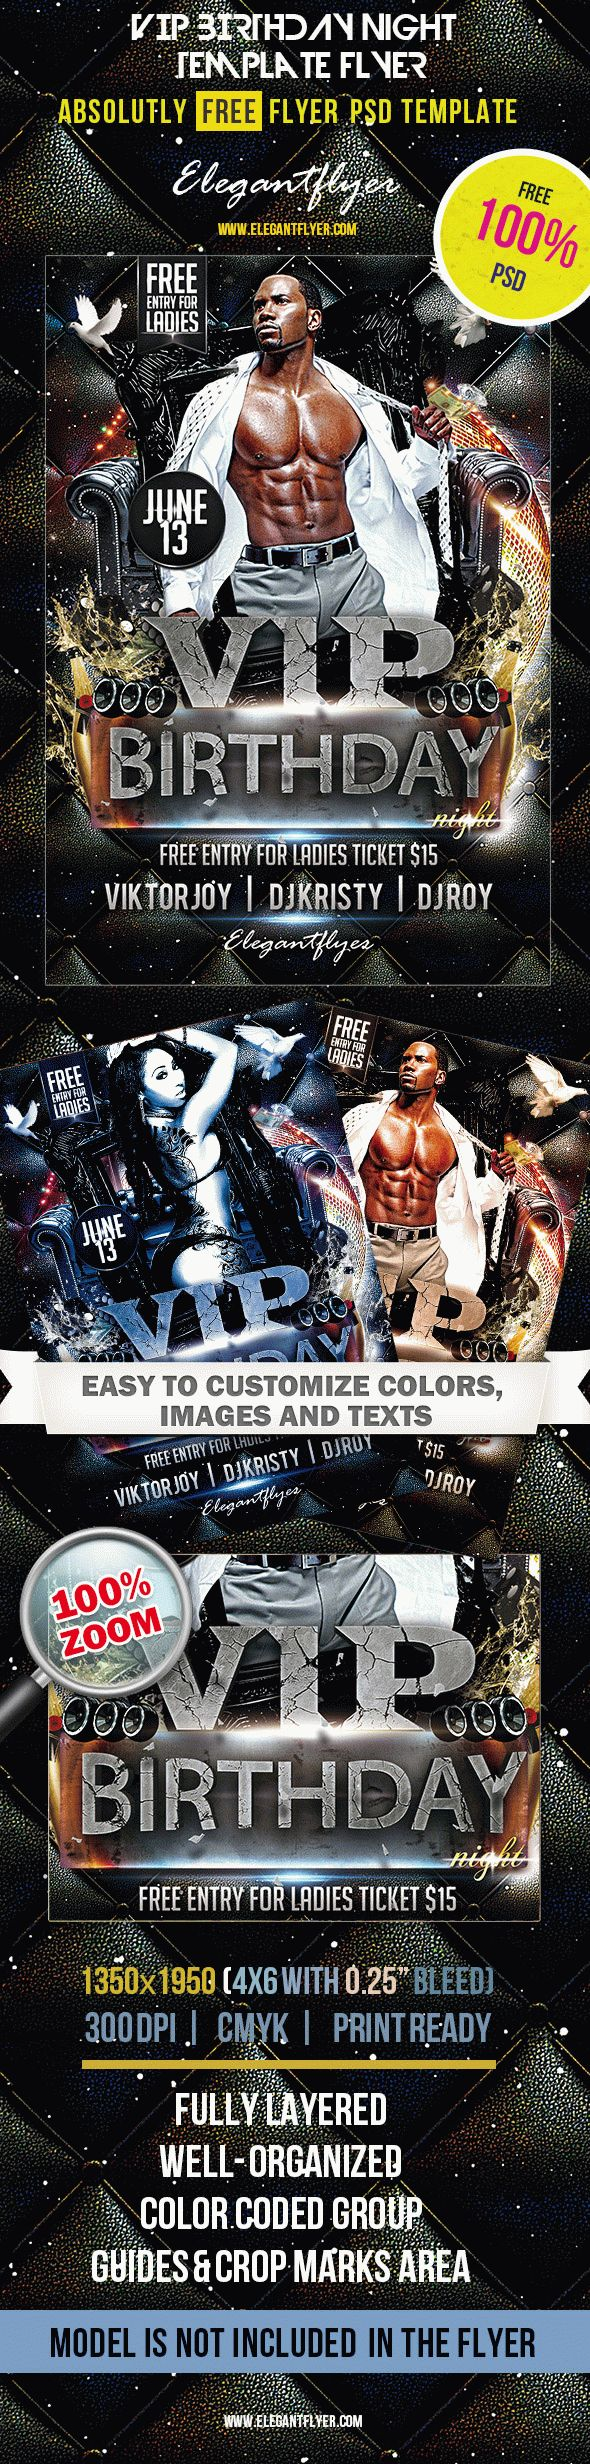 VIP Birthday Night – Club and Party Free Flyer PSD Template